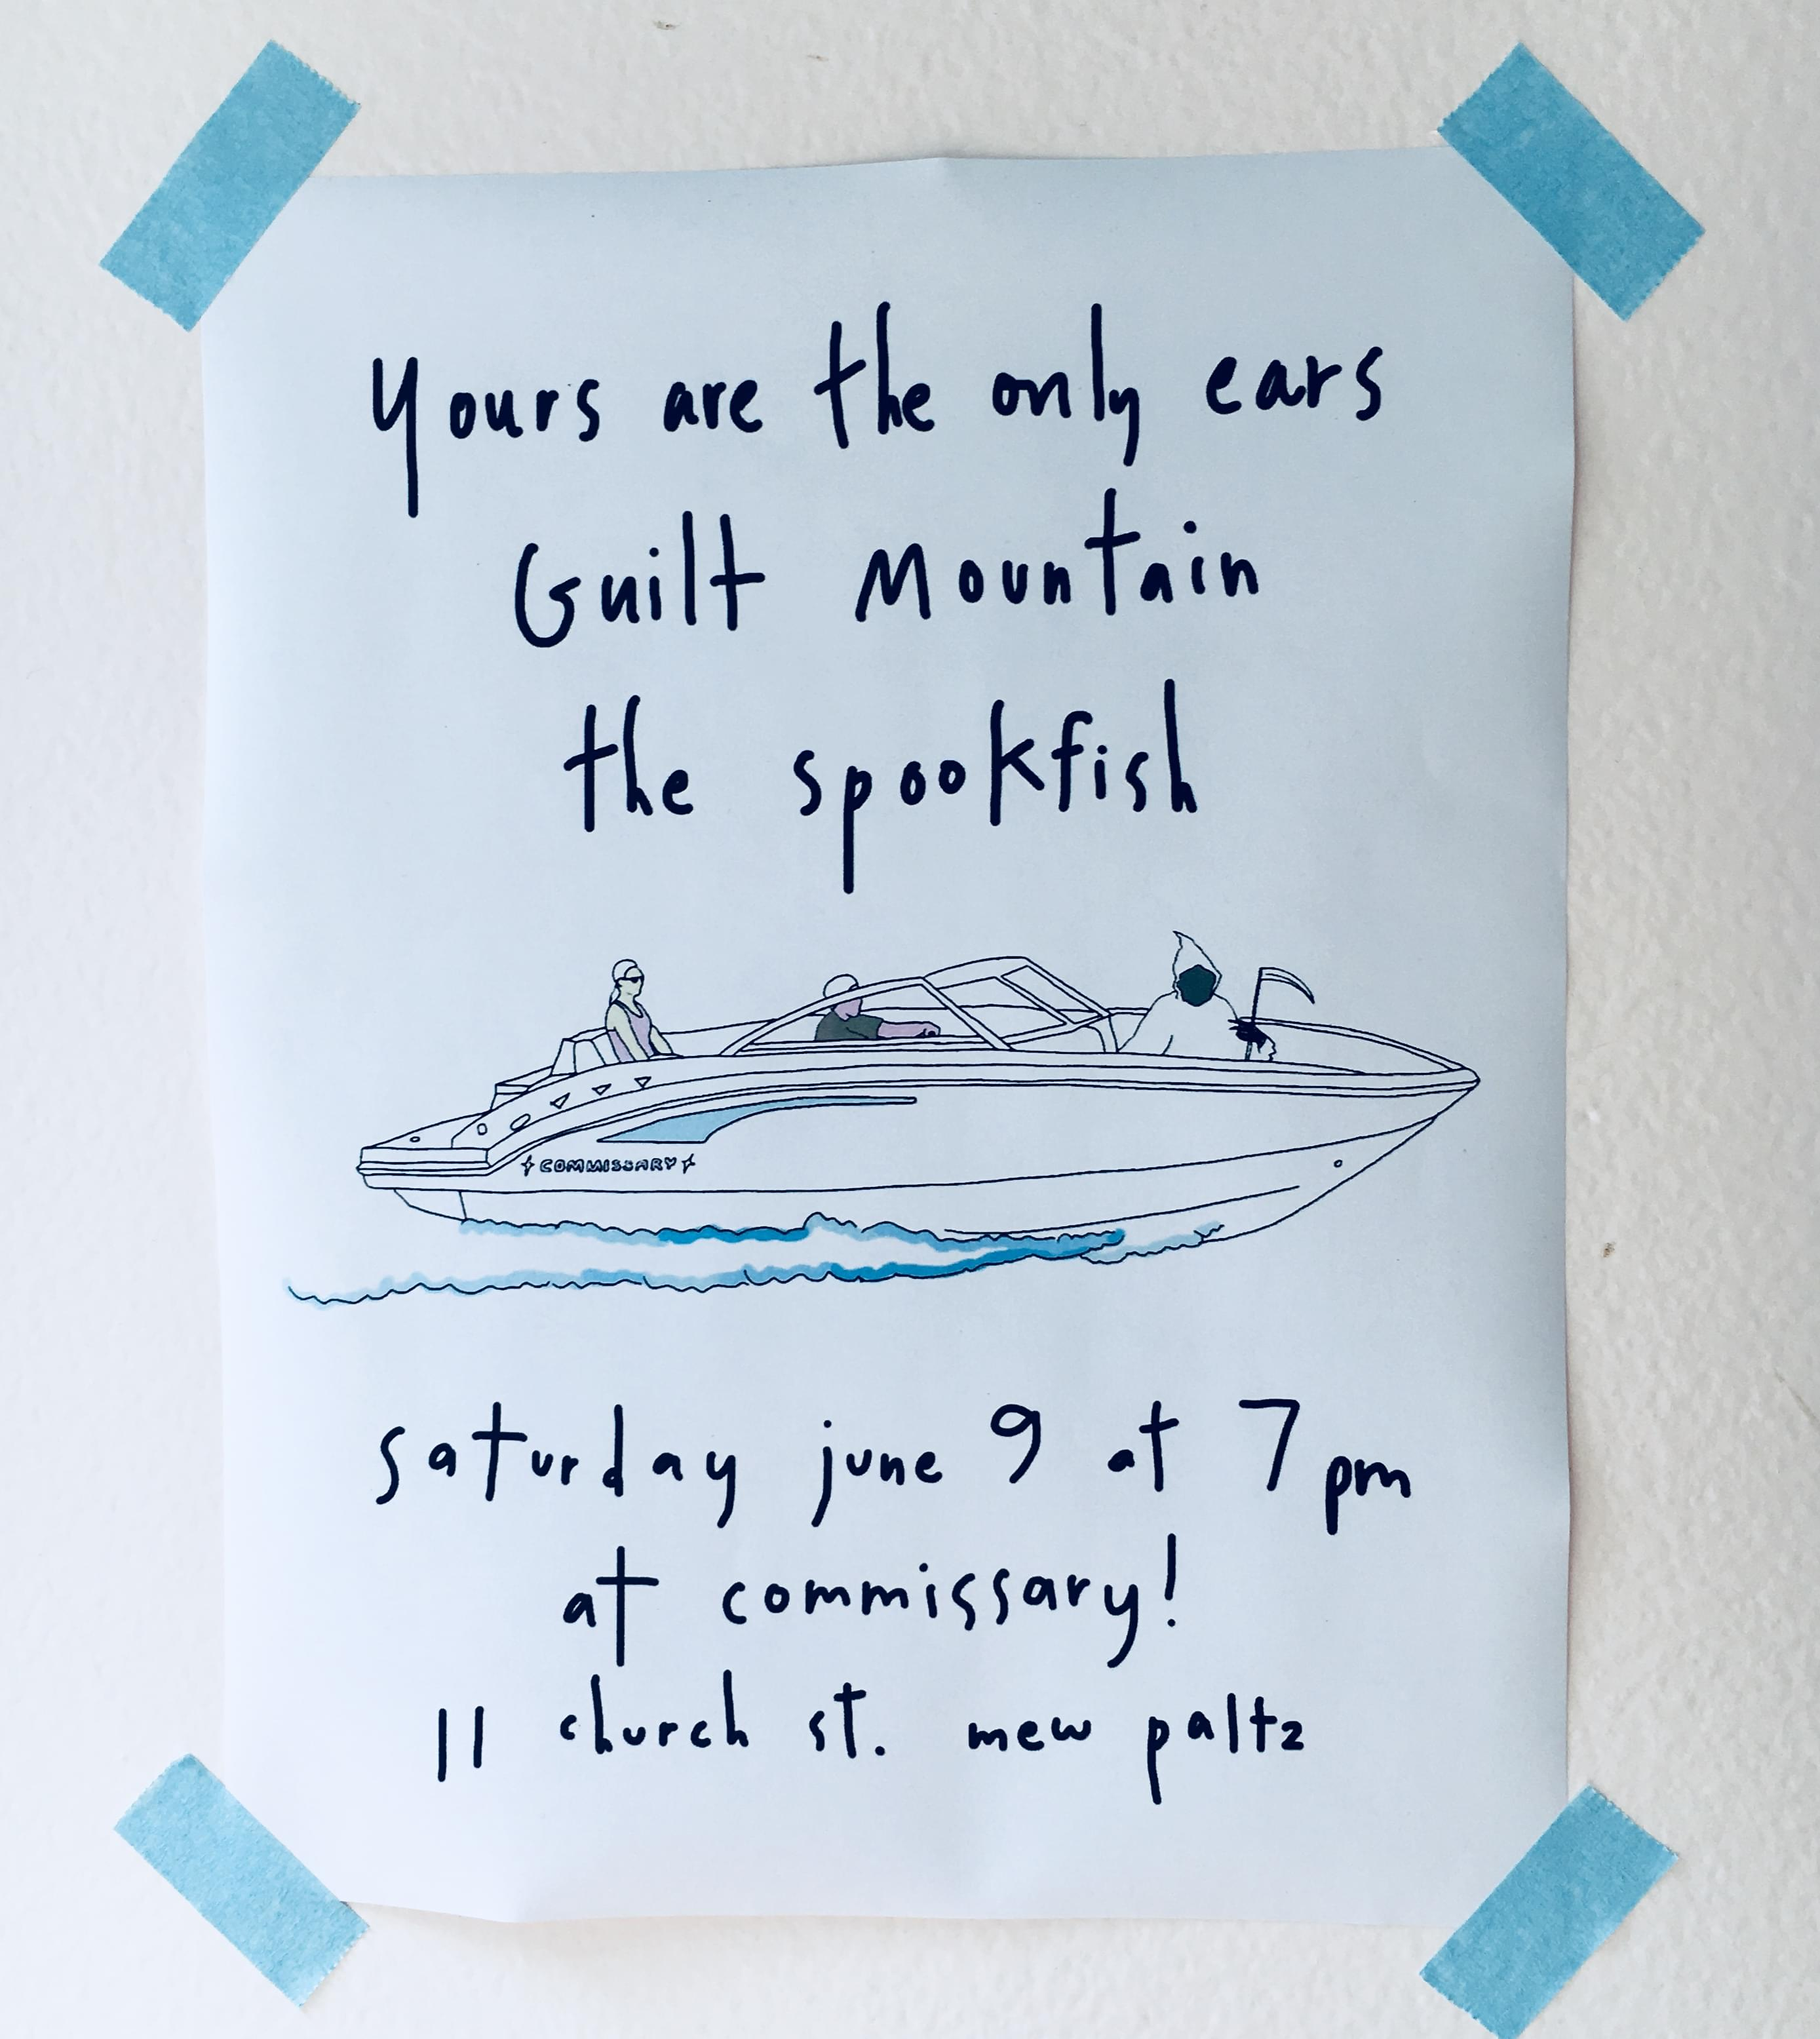 Yours are the Only Ears, Guilt Mountain, The Spookfish @ Commissary